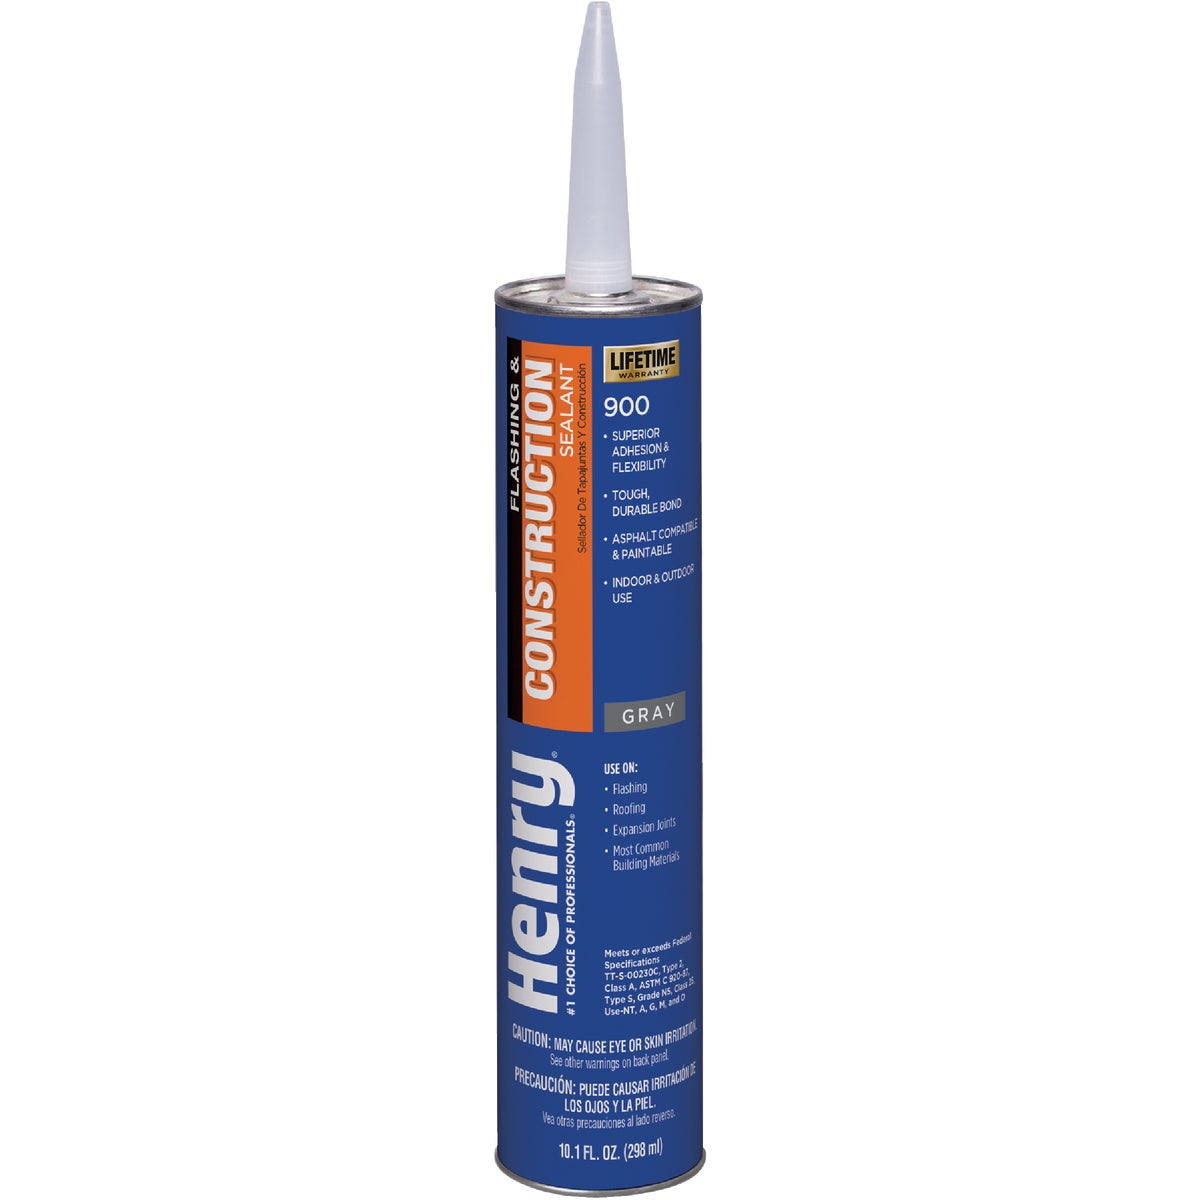 11OZ CONST/FLASH SEALANT - HE900104 by Henry Company